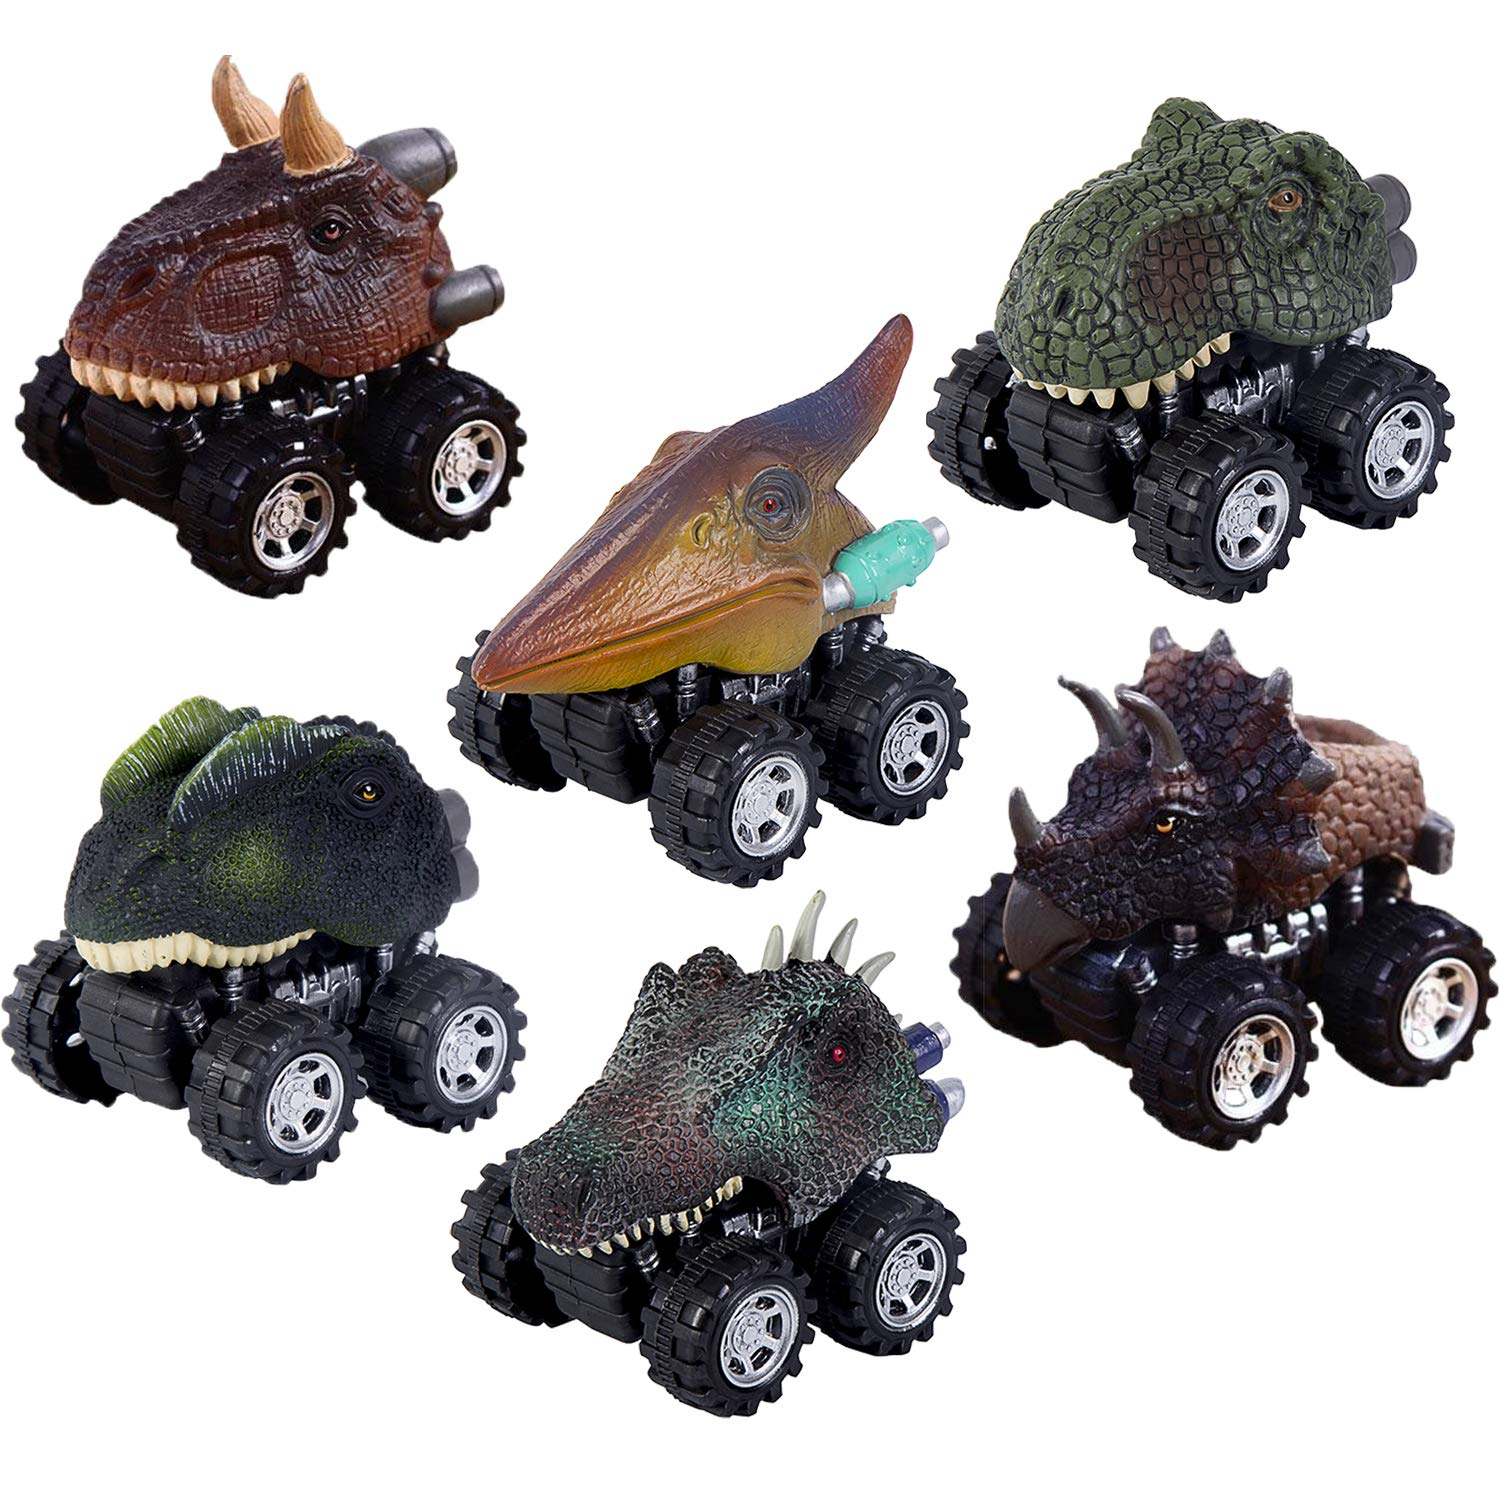 Oiuros Pull Back Dinosaur Cars, Dinosaur Cars Toys with Big Tire Wheel for 3-14 Year Old Boys Girls Creative Gifts by, 6-Pack